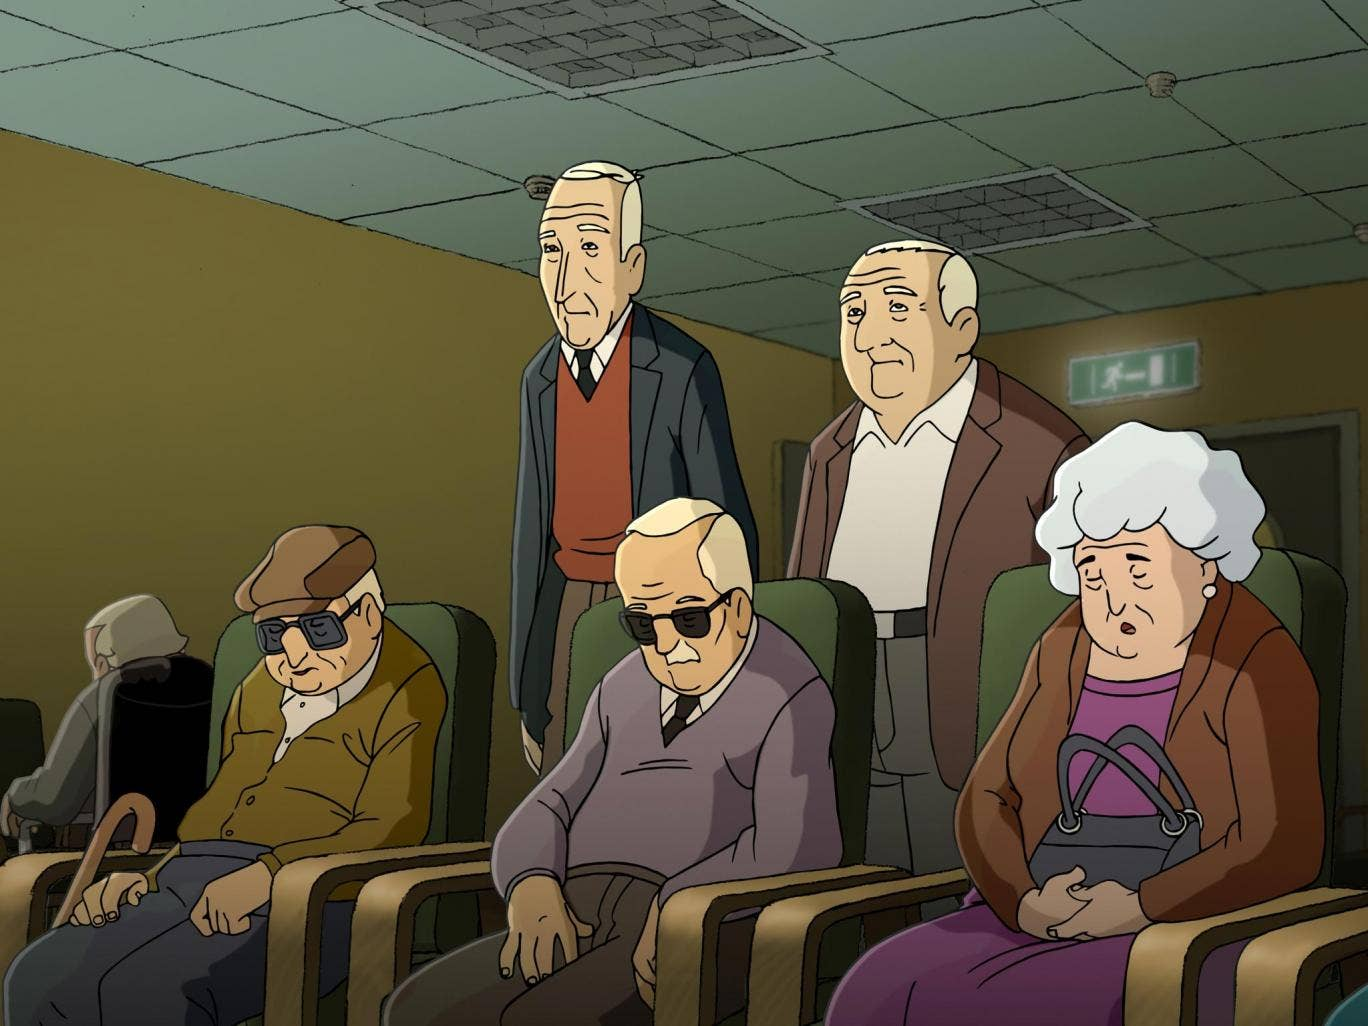 Wrinkles portrays old-timers trying to cope with deteriorating health and trying to keep their dignity